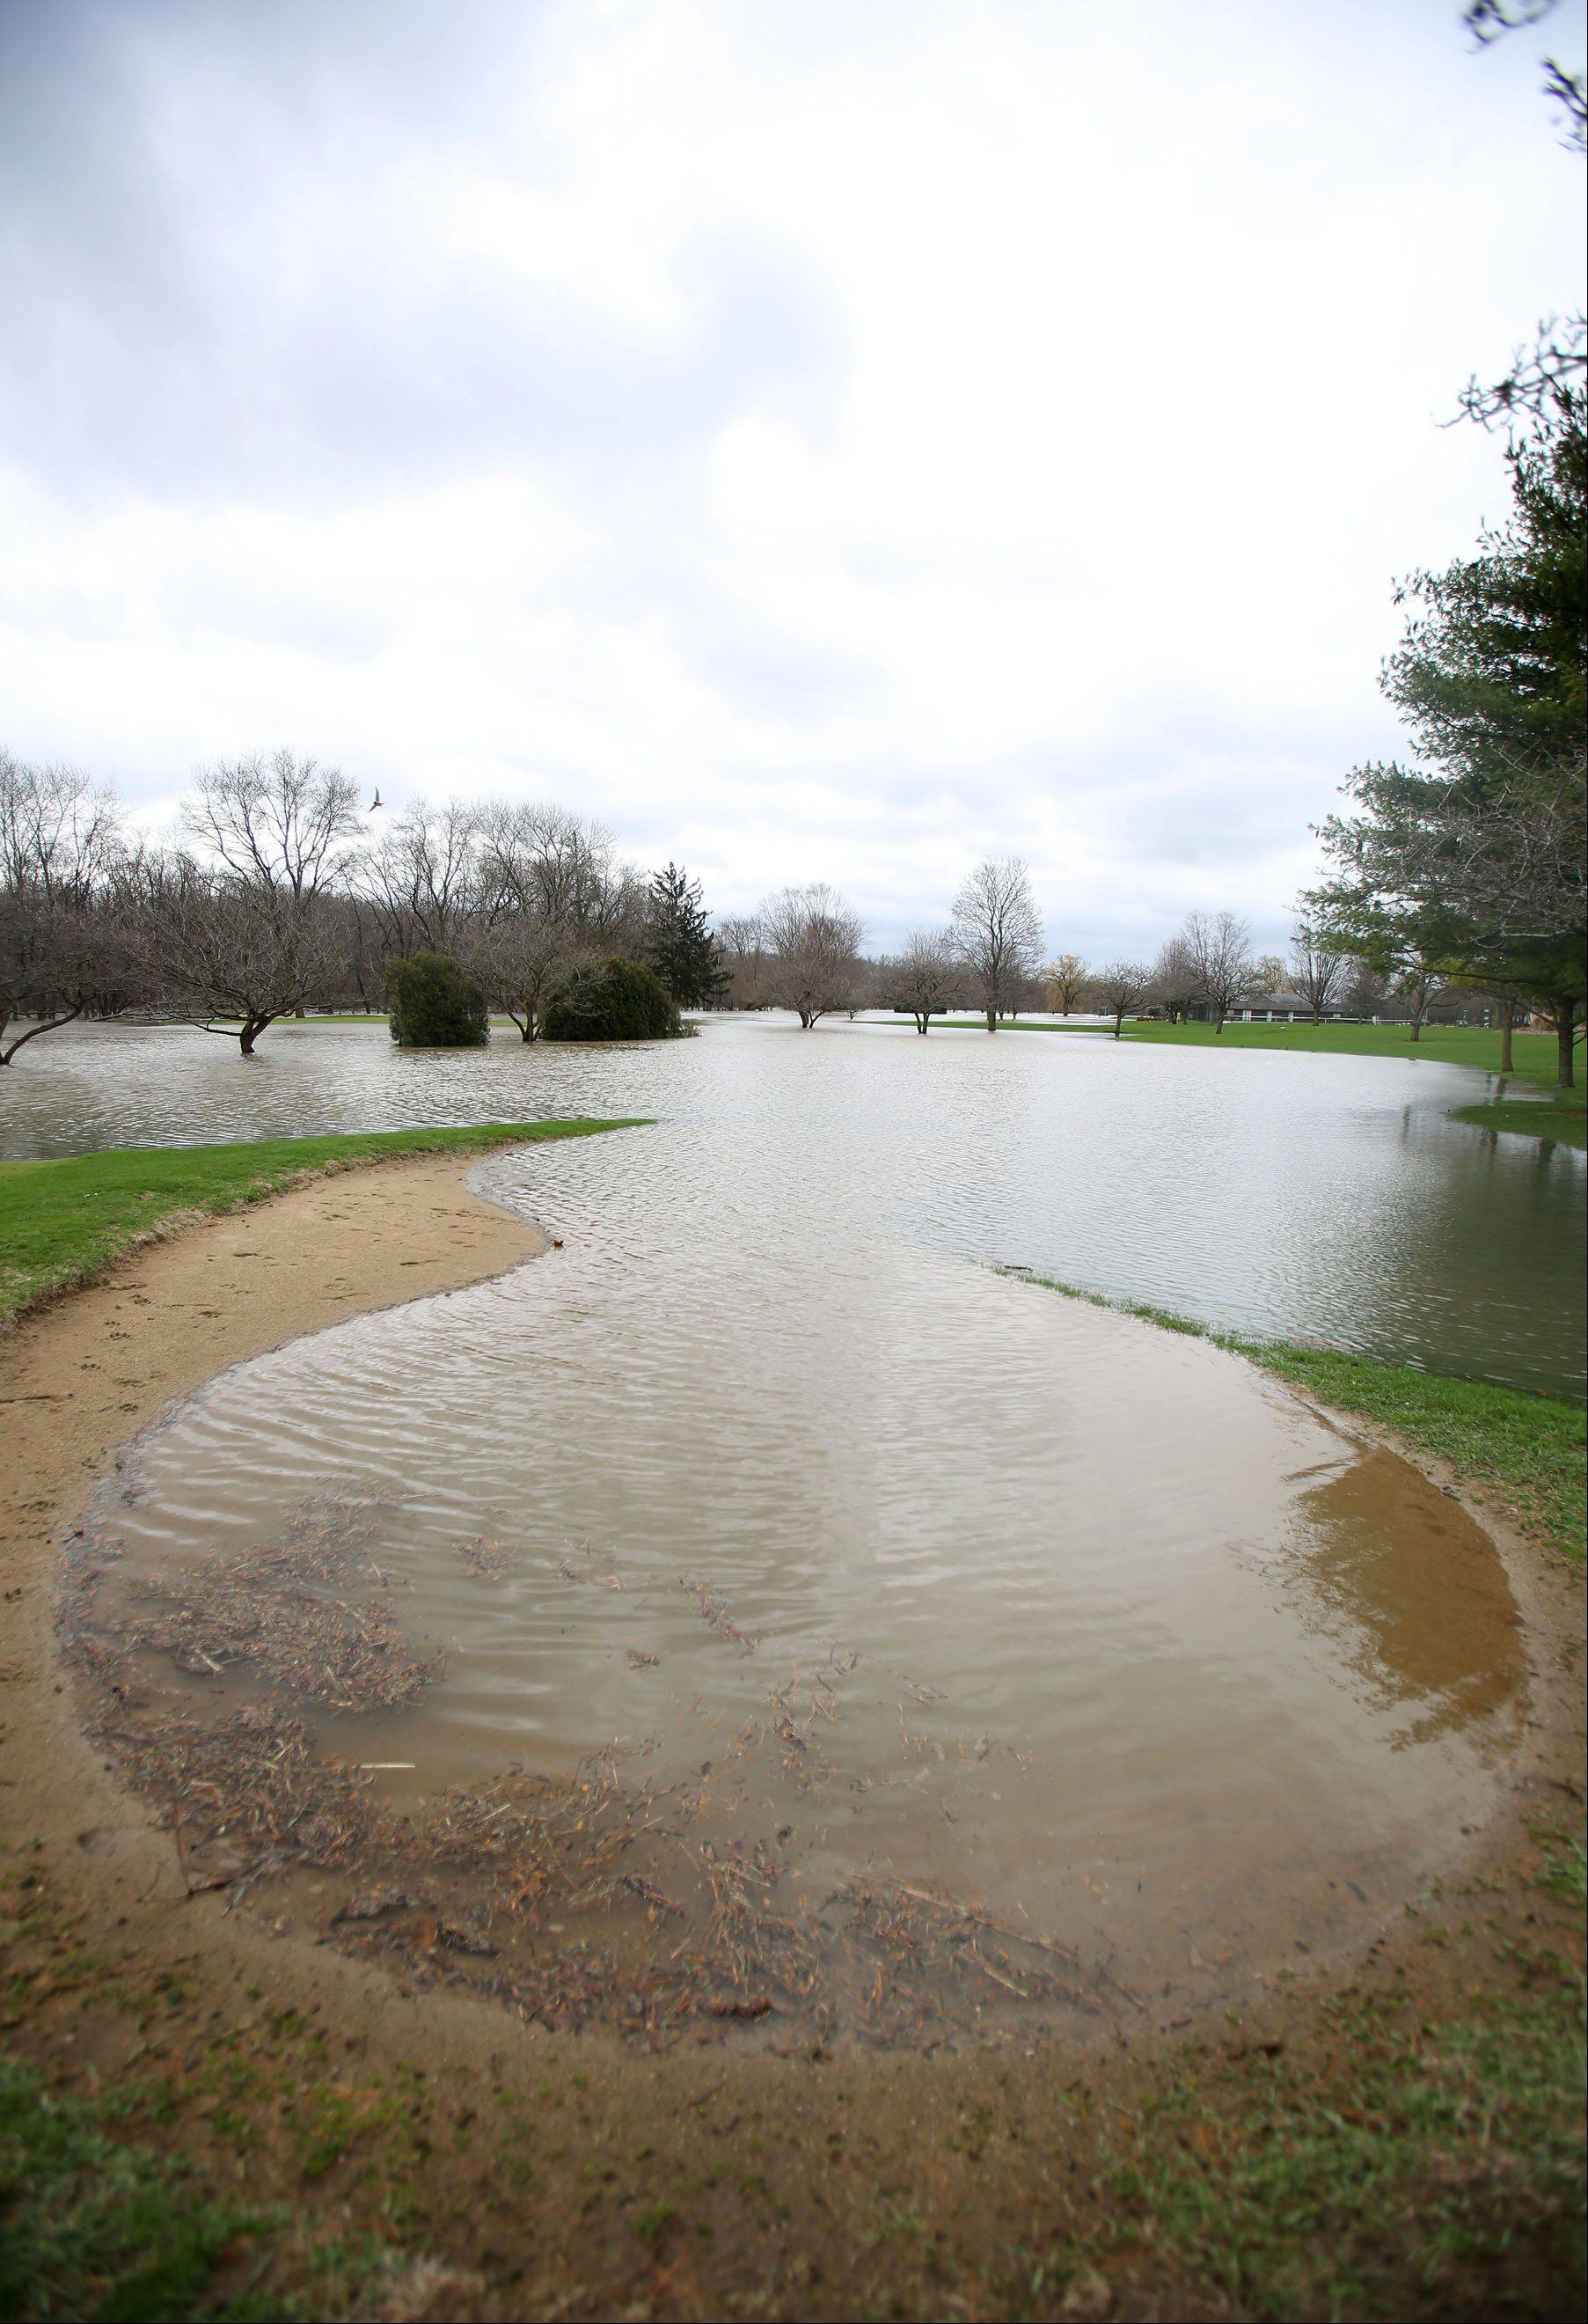 Much of the Libertyville Golf Course was flooded in mid-April. It is scheduled to reopen under new management on May 18.